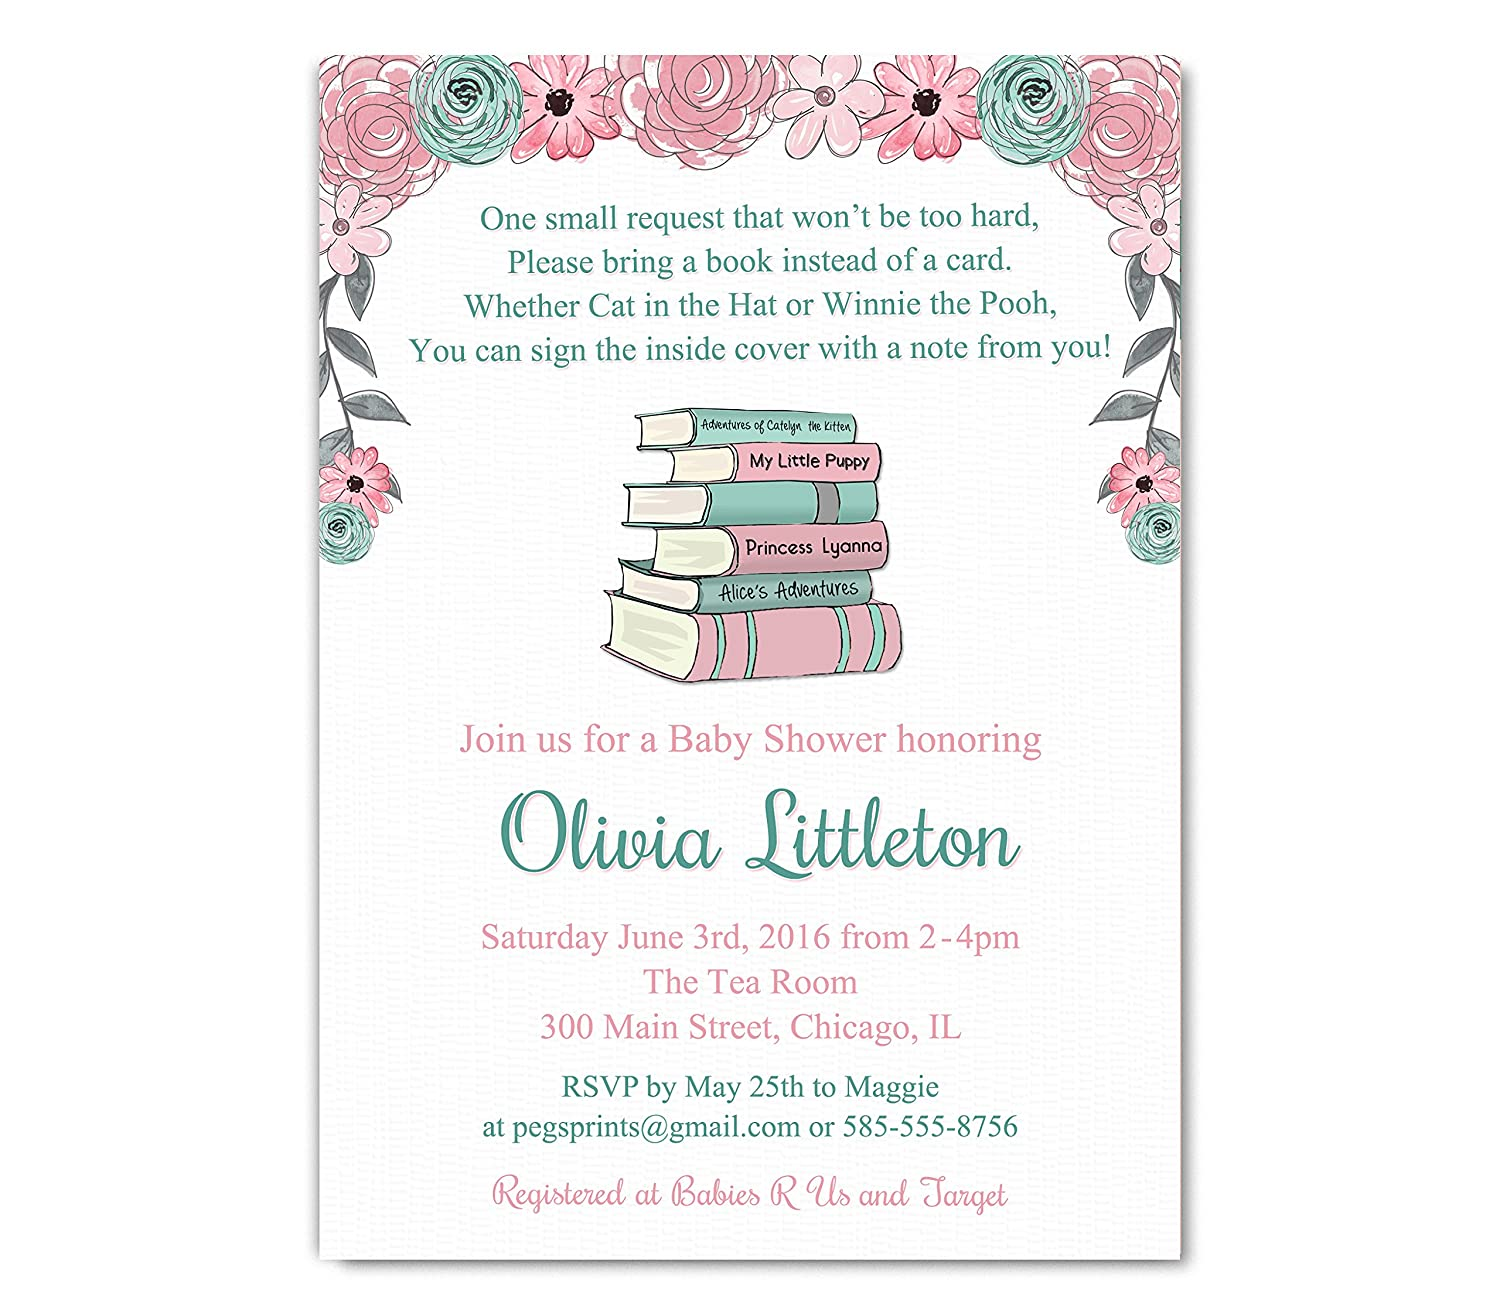 Amazon.com: Storybook Baby Shower Invitations Girl - Bring a Book ...